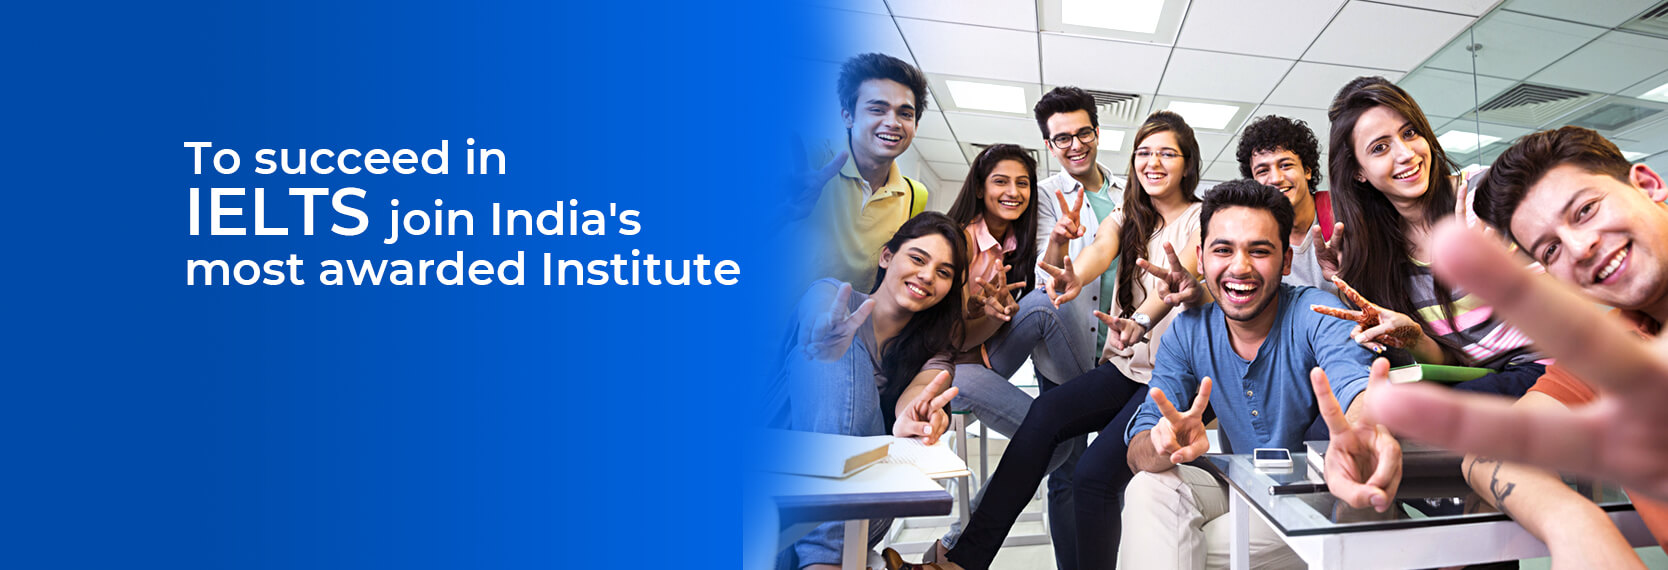 Best Ielts Institute in India